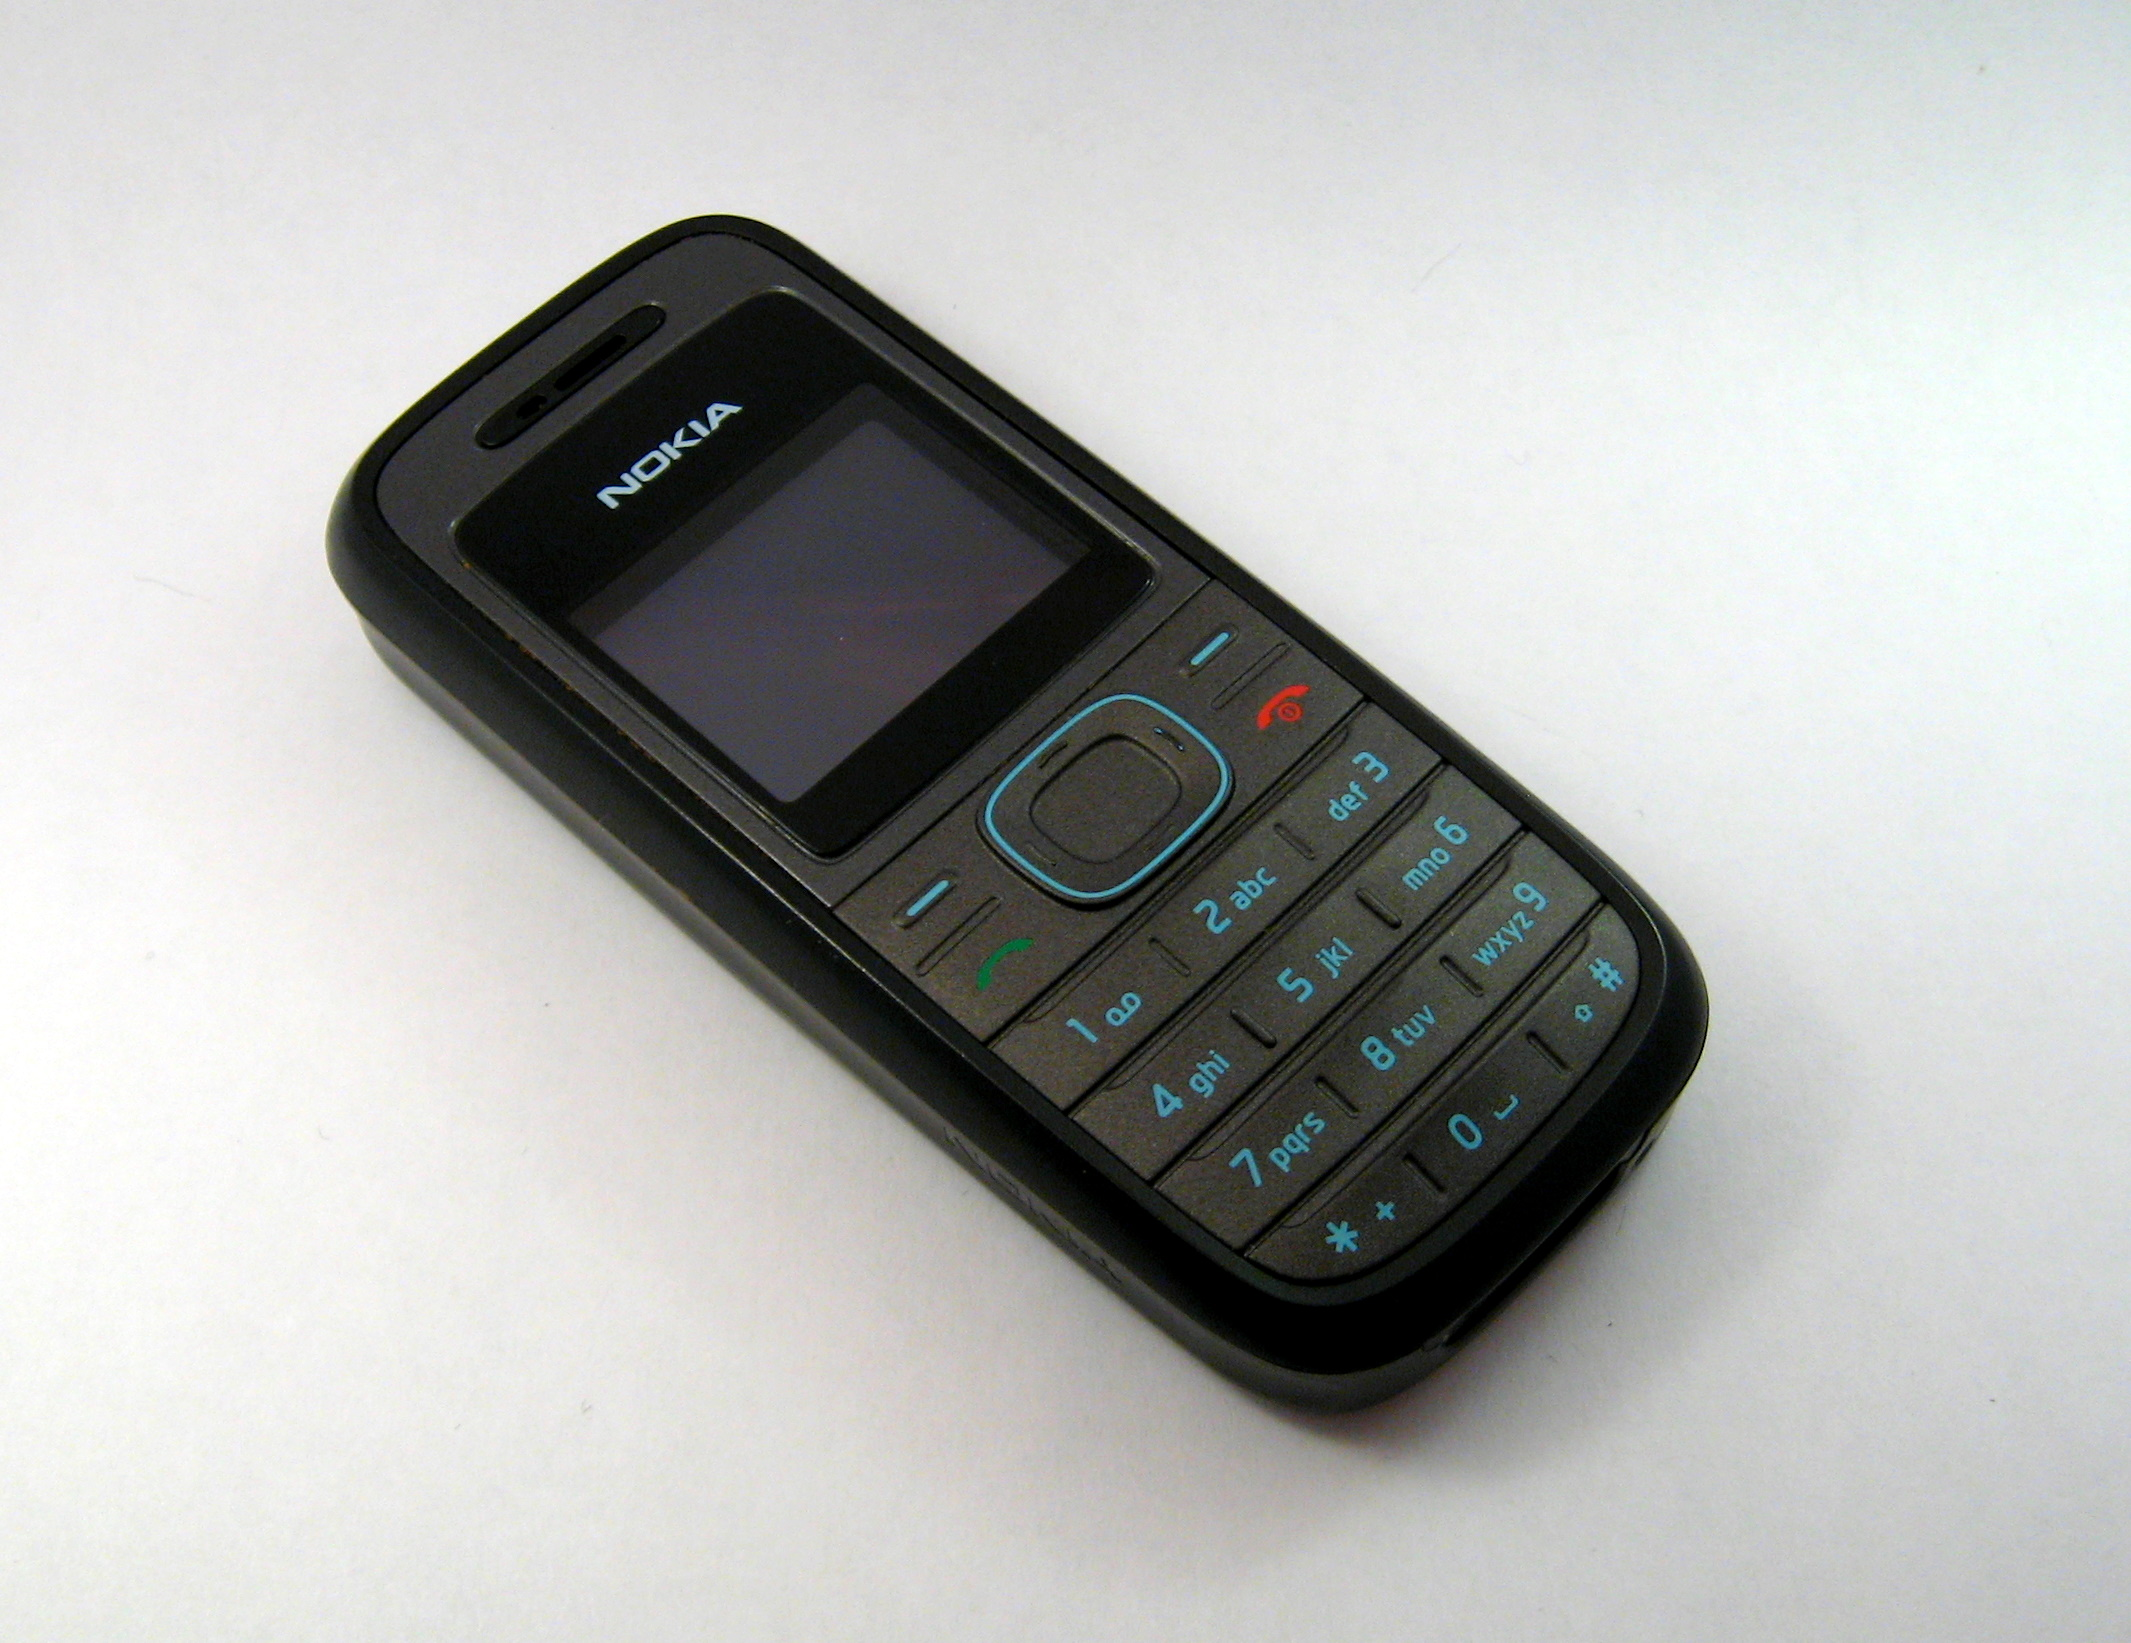 Filenokia 1208 Ubt Wikimedia Commons Nokia Cell Phone